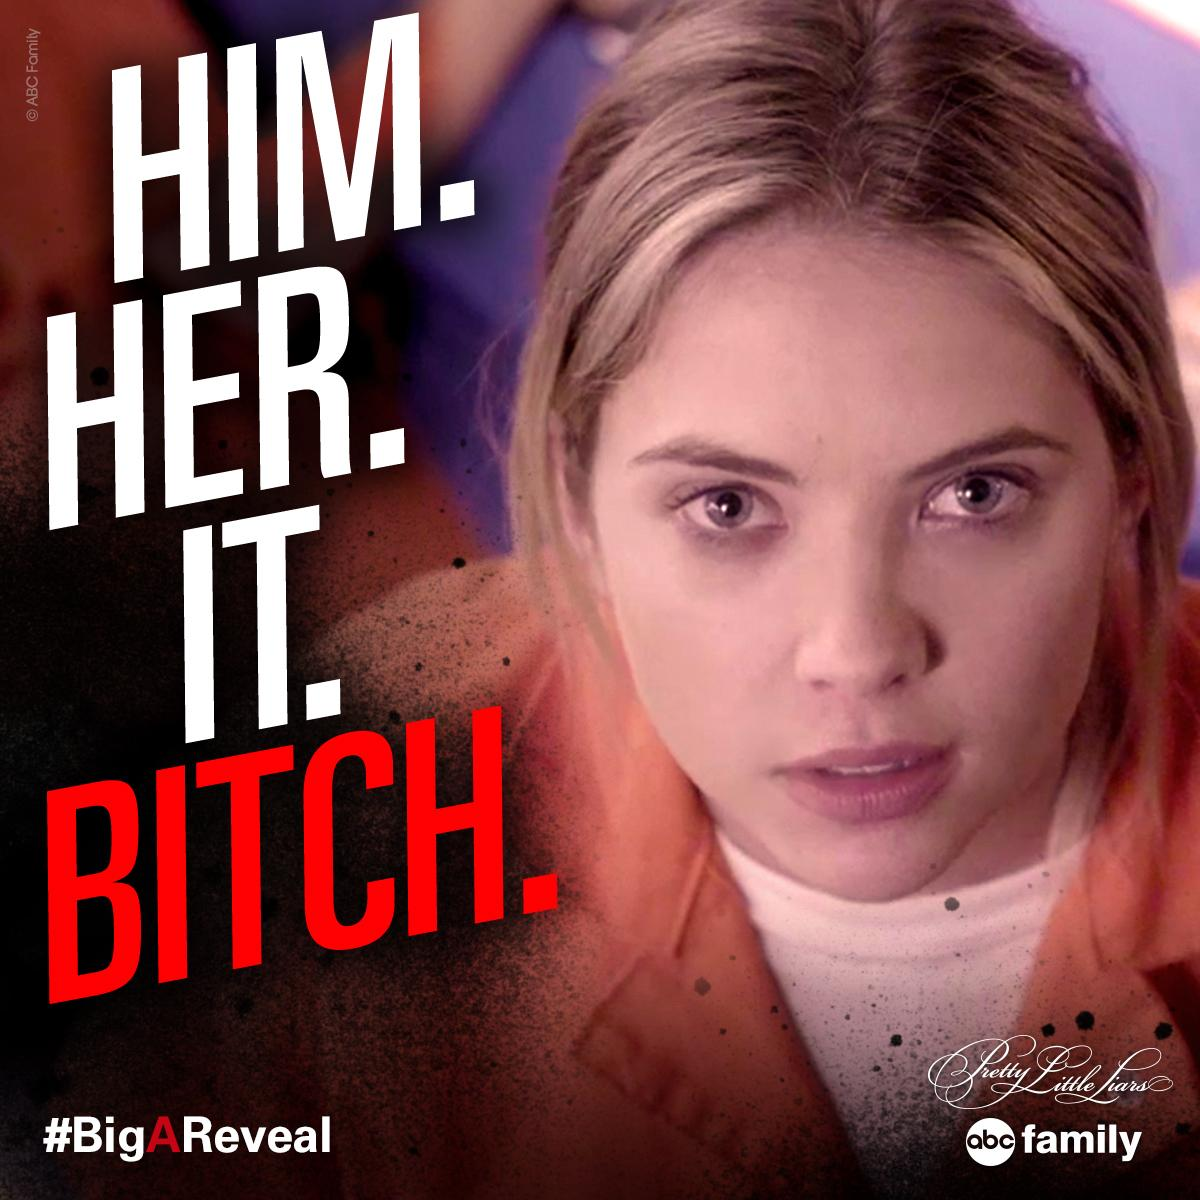 Hanna is everything #PLL #BigAReveal